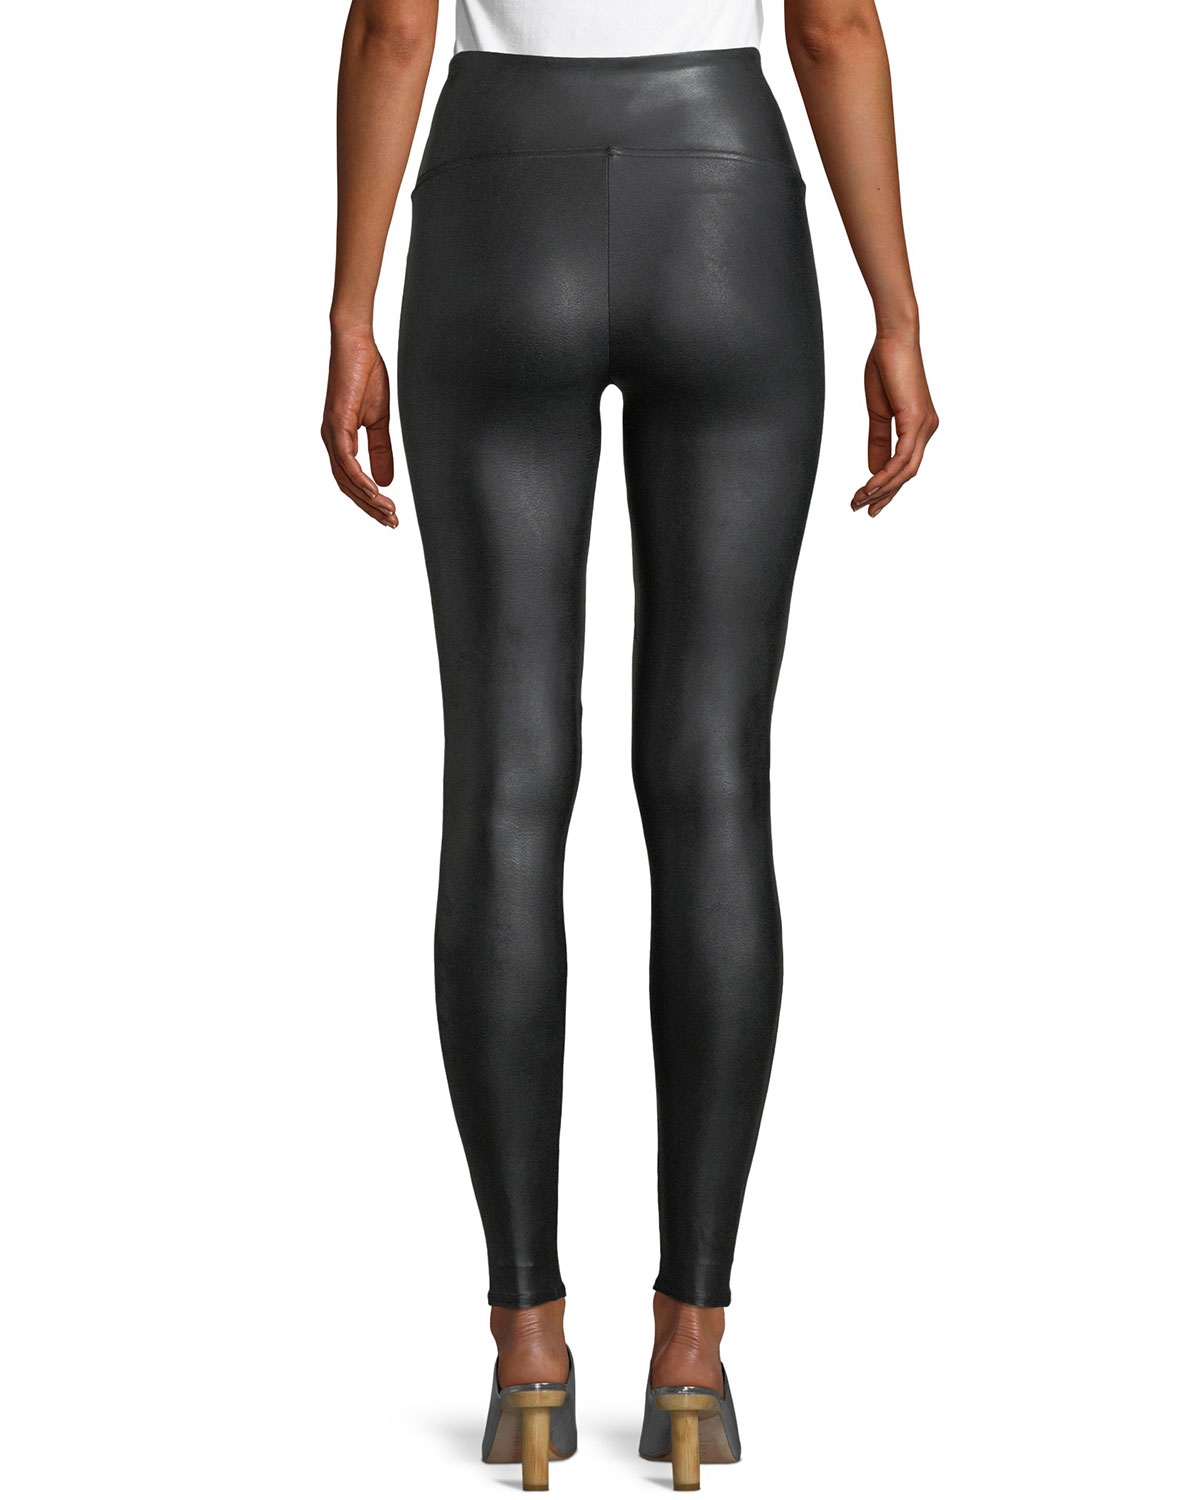 6bcd66ed32933 Spanx Ready-to-Wow™ Faux-Leather Leggings | Neiman Marcus